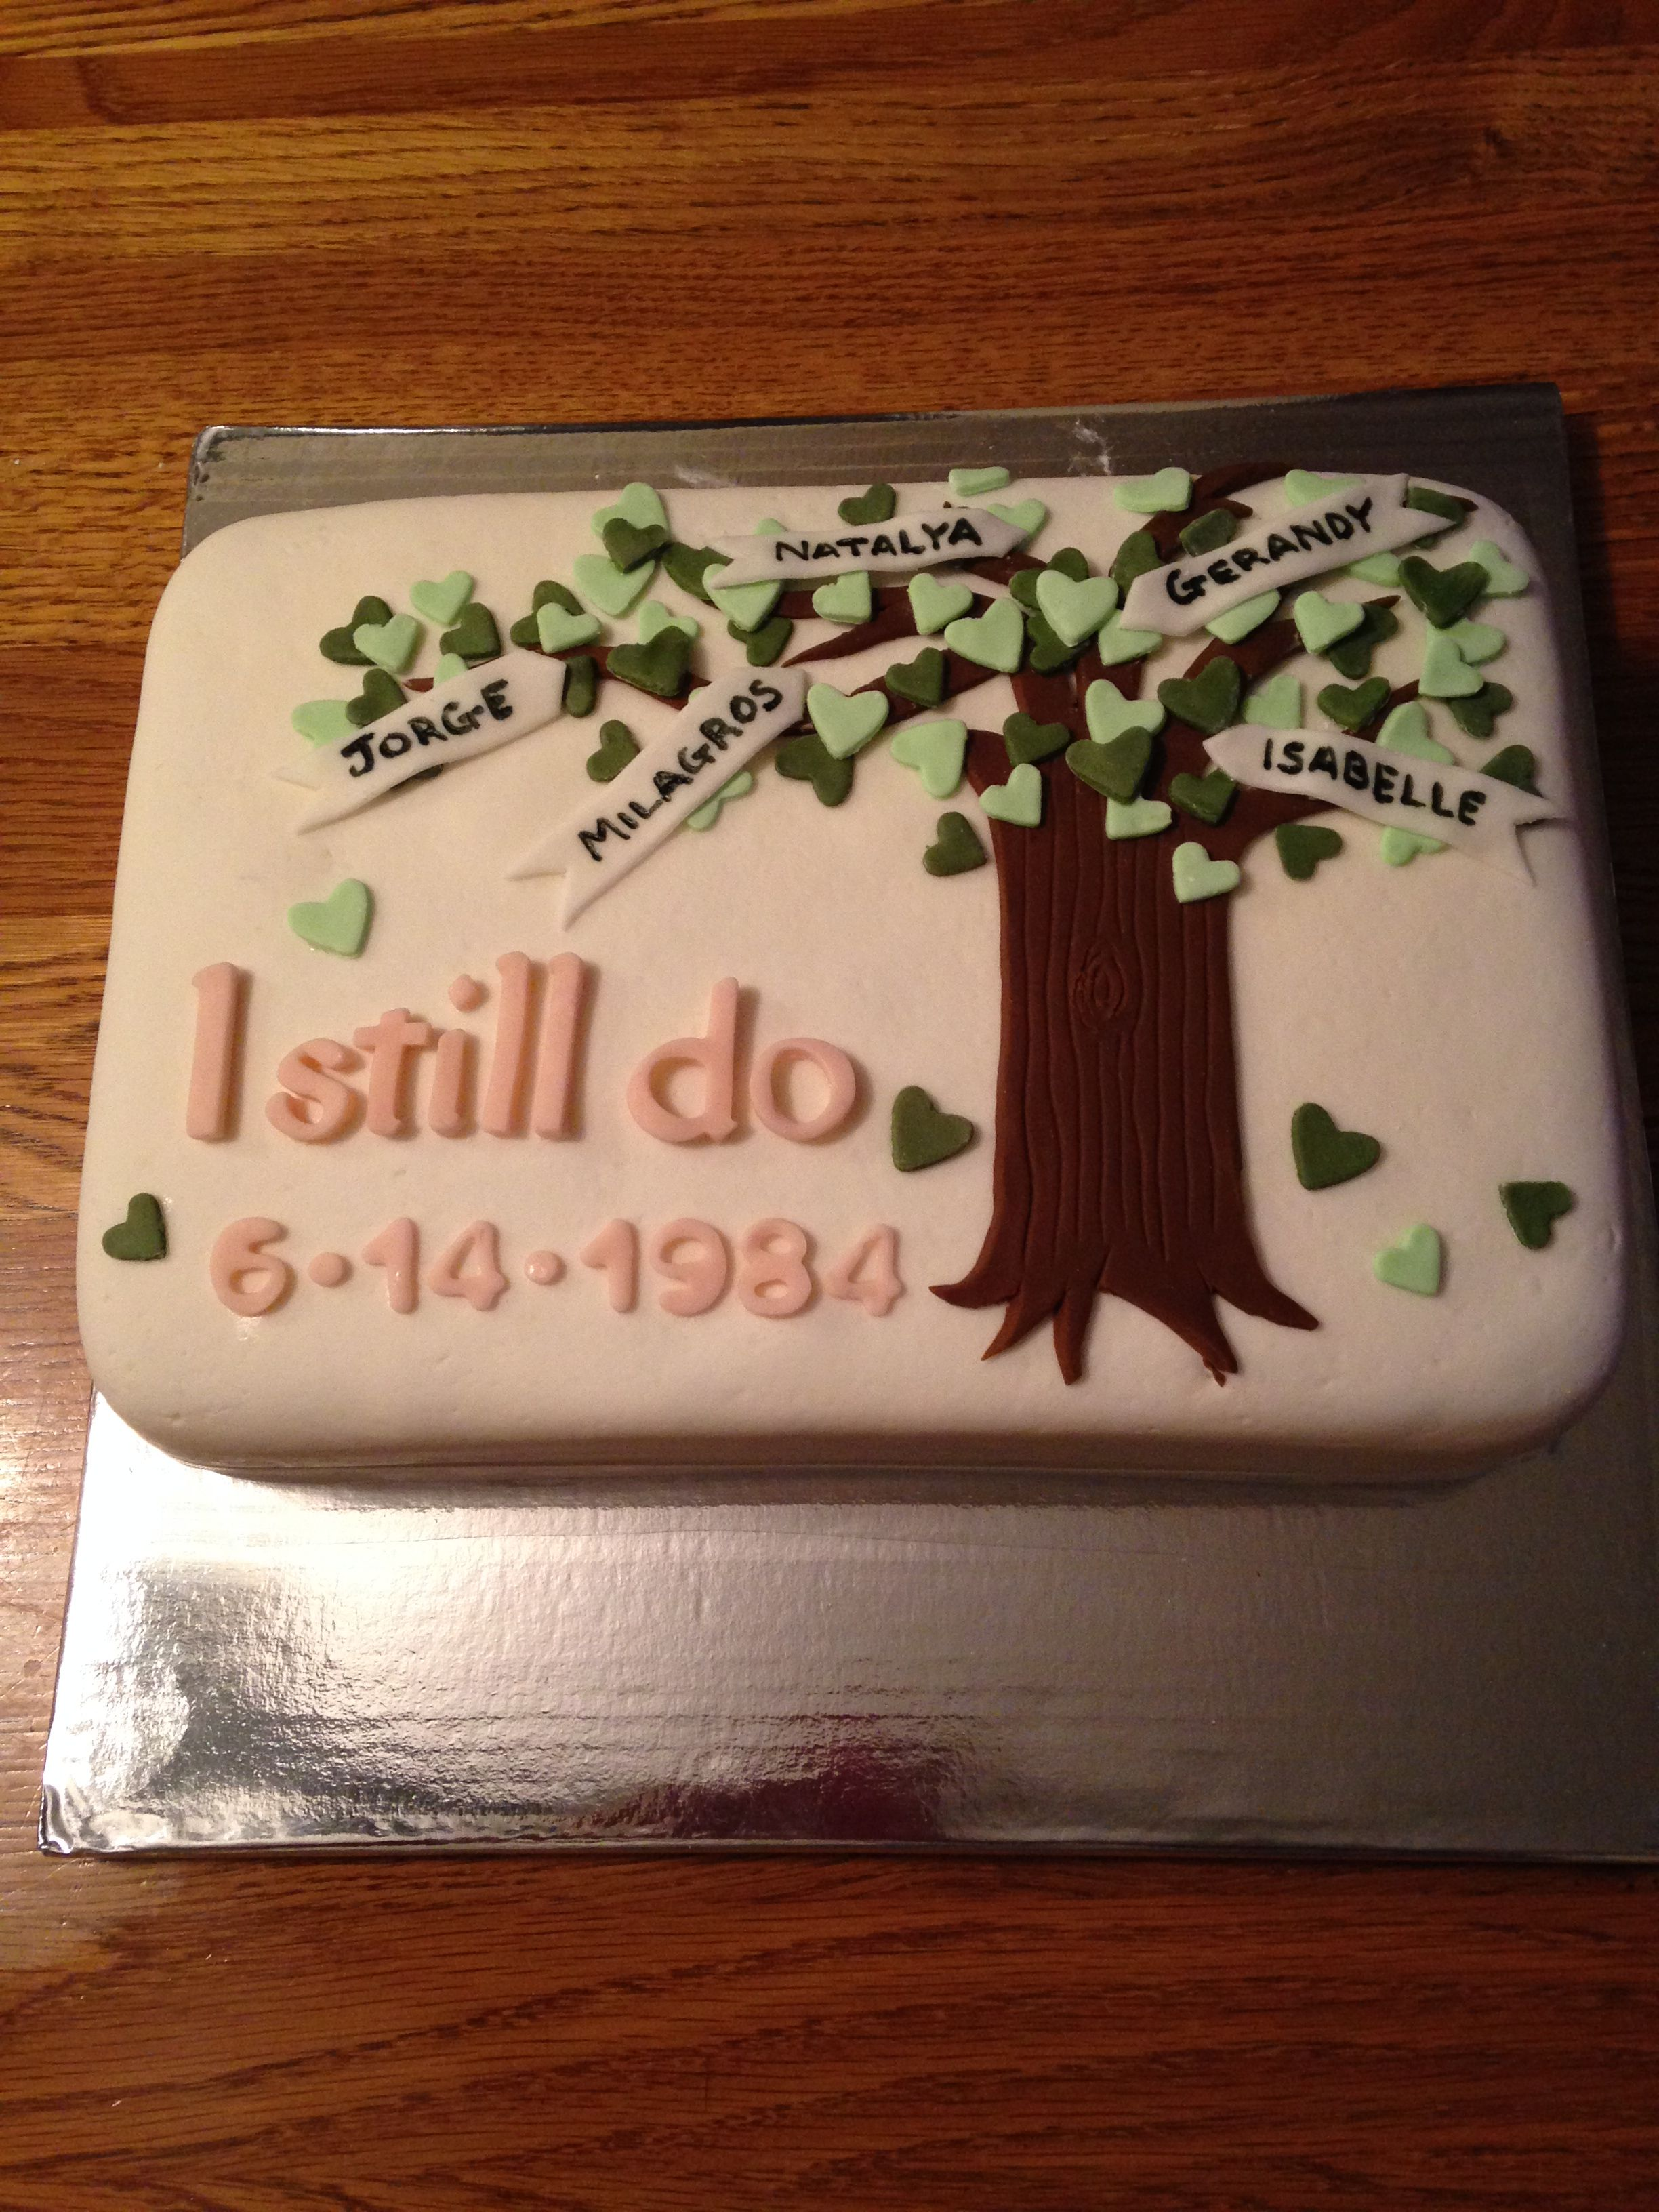 30th Wedding Anniversary Cake | My Cakes and Cupcakes | Pinterest ...